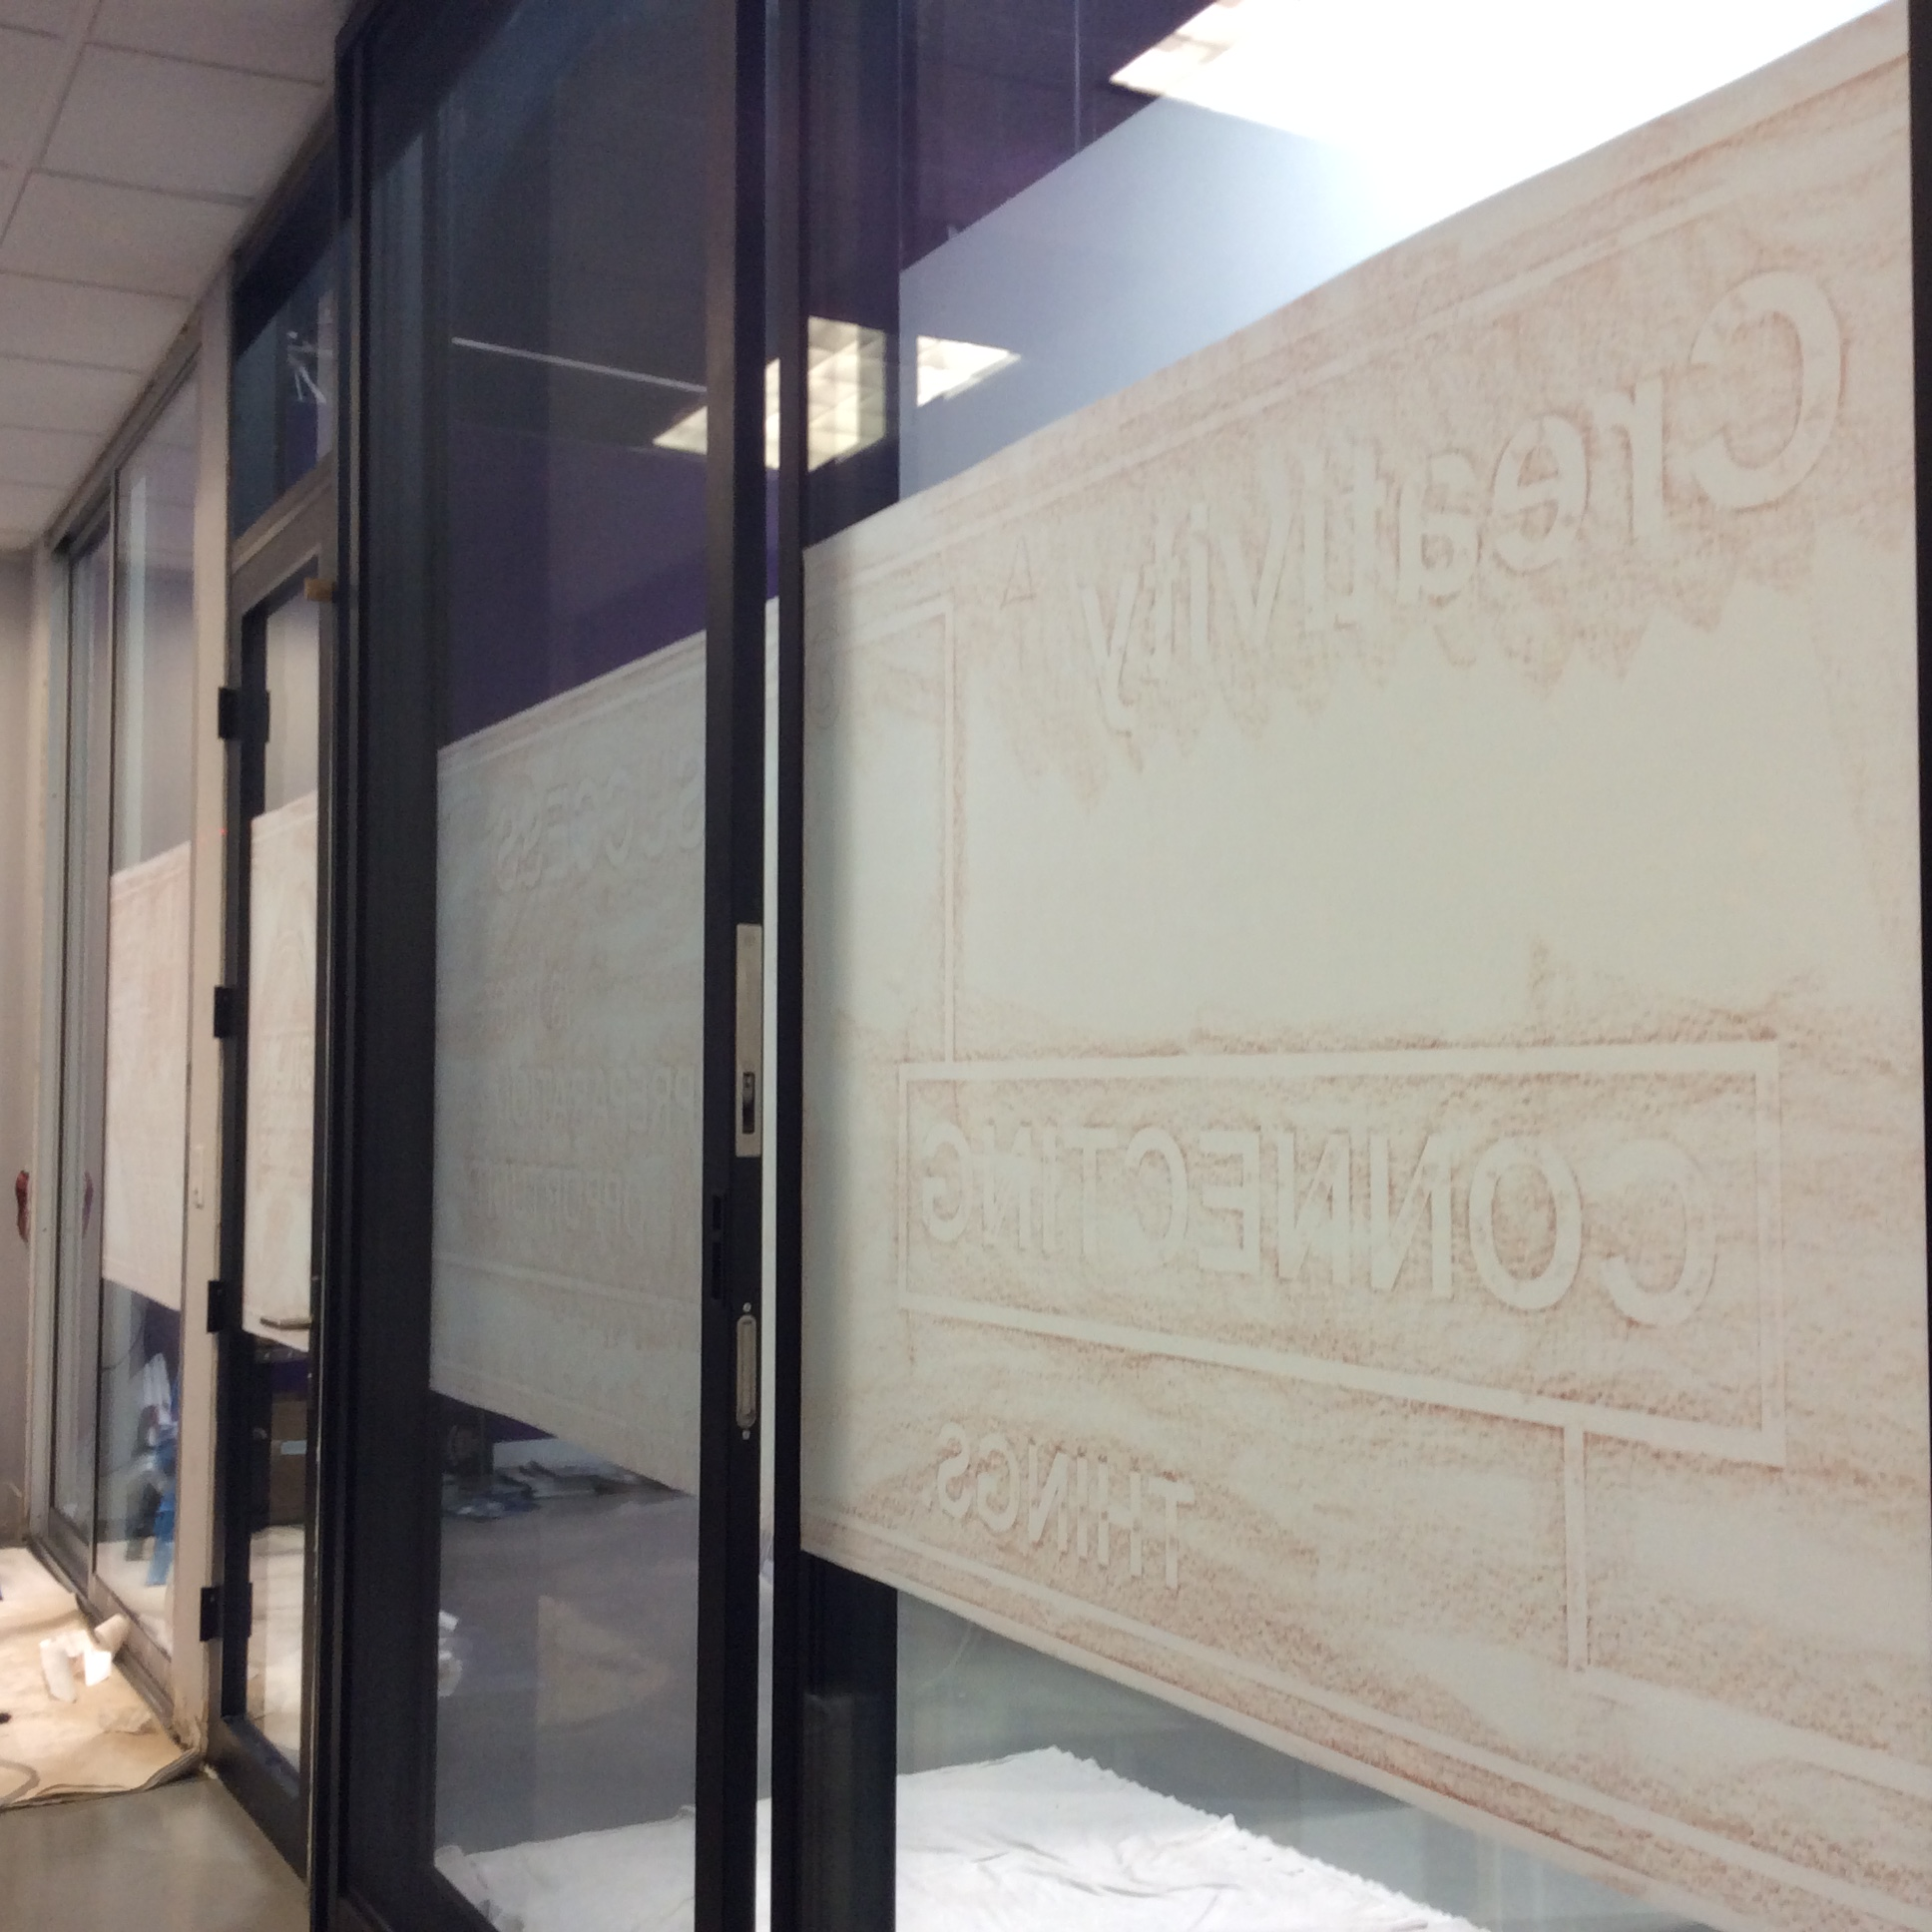 Custom Cut Frost Design for Office Windows